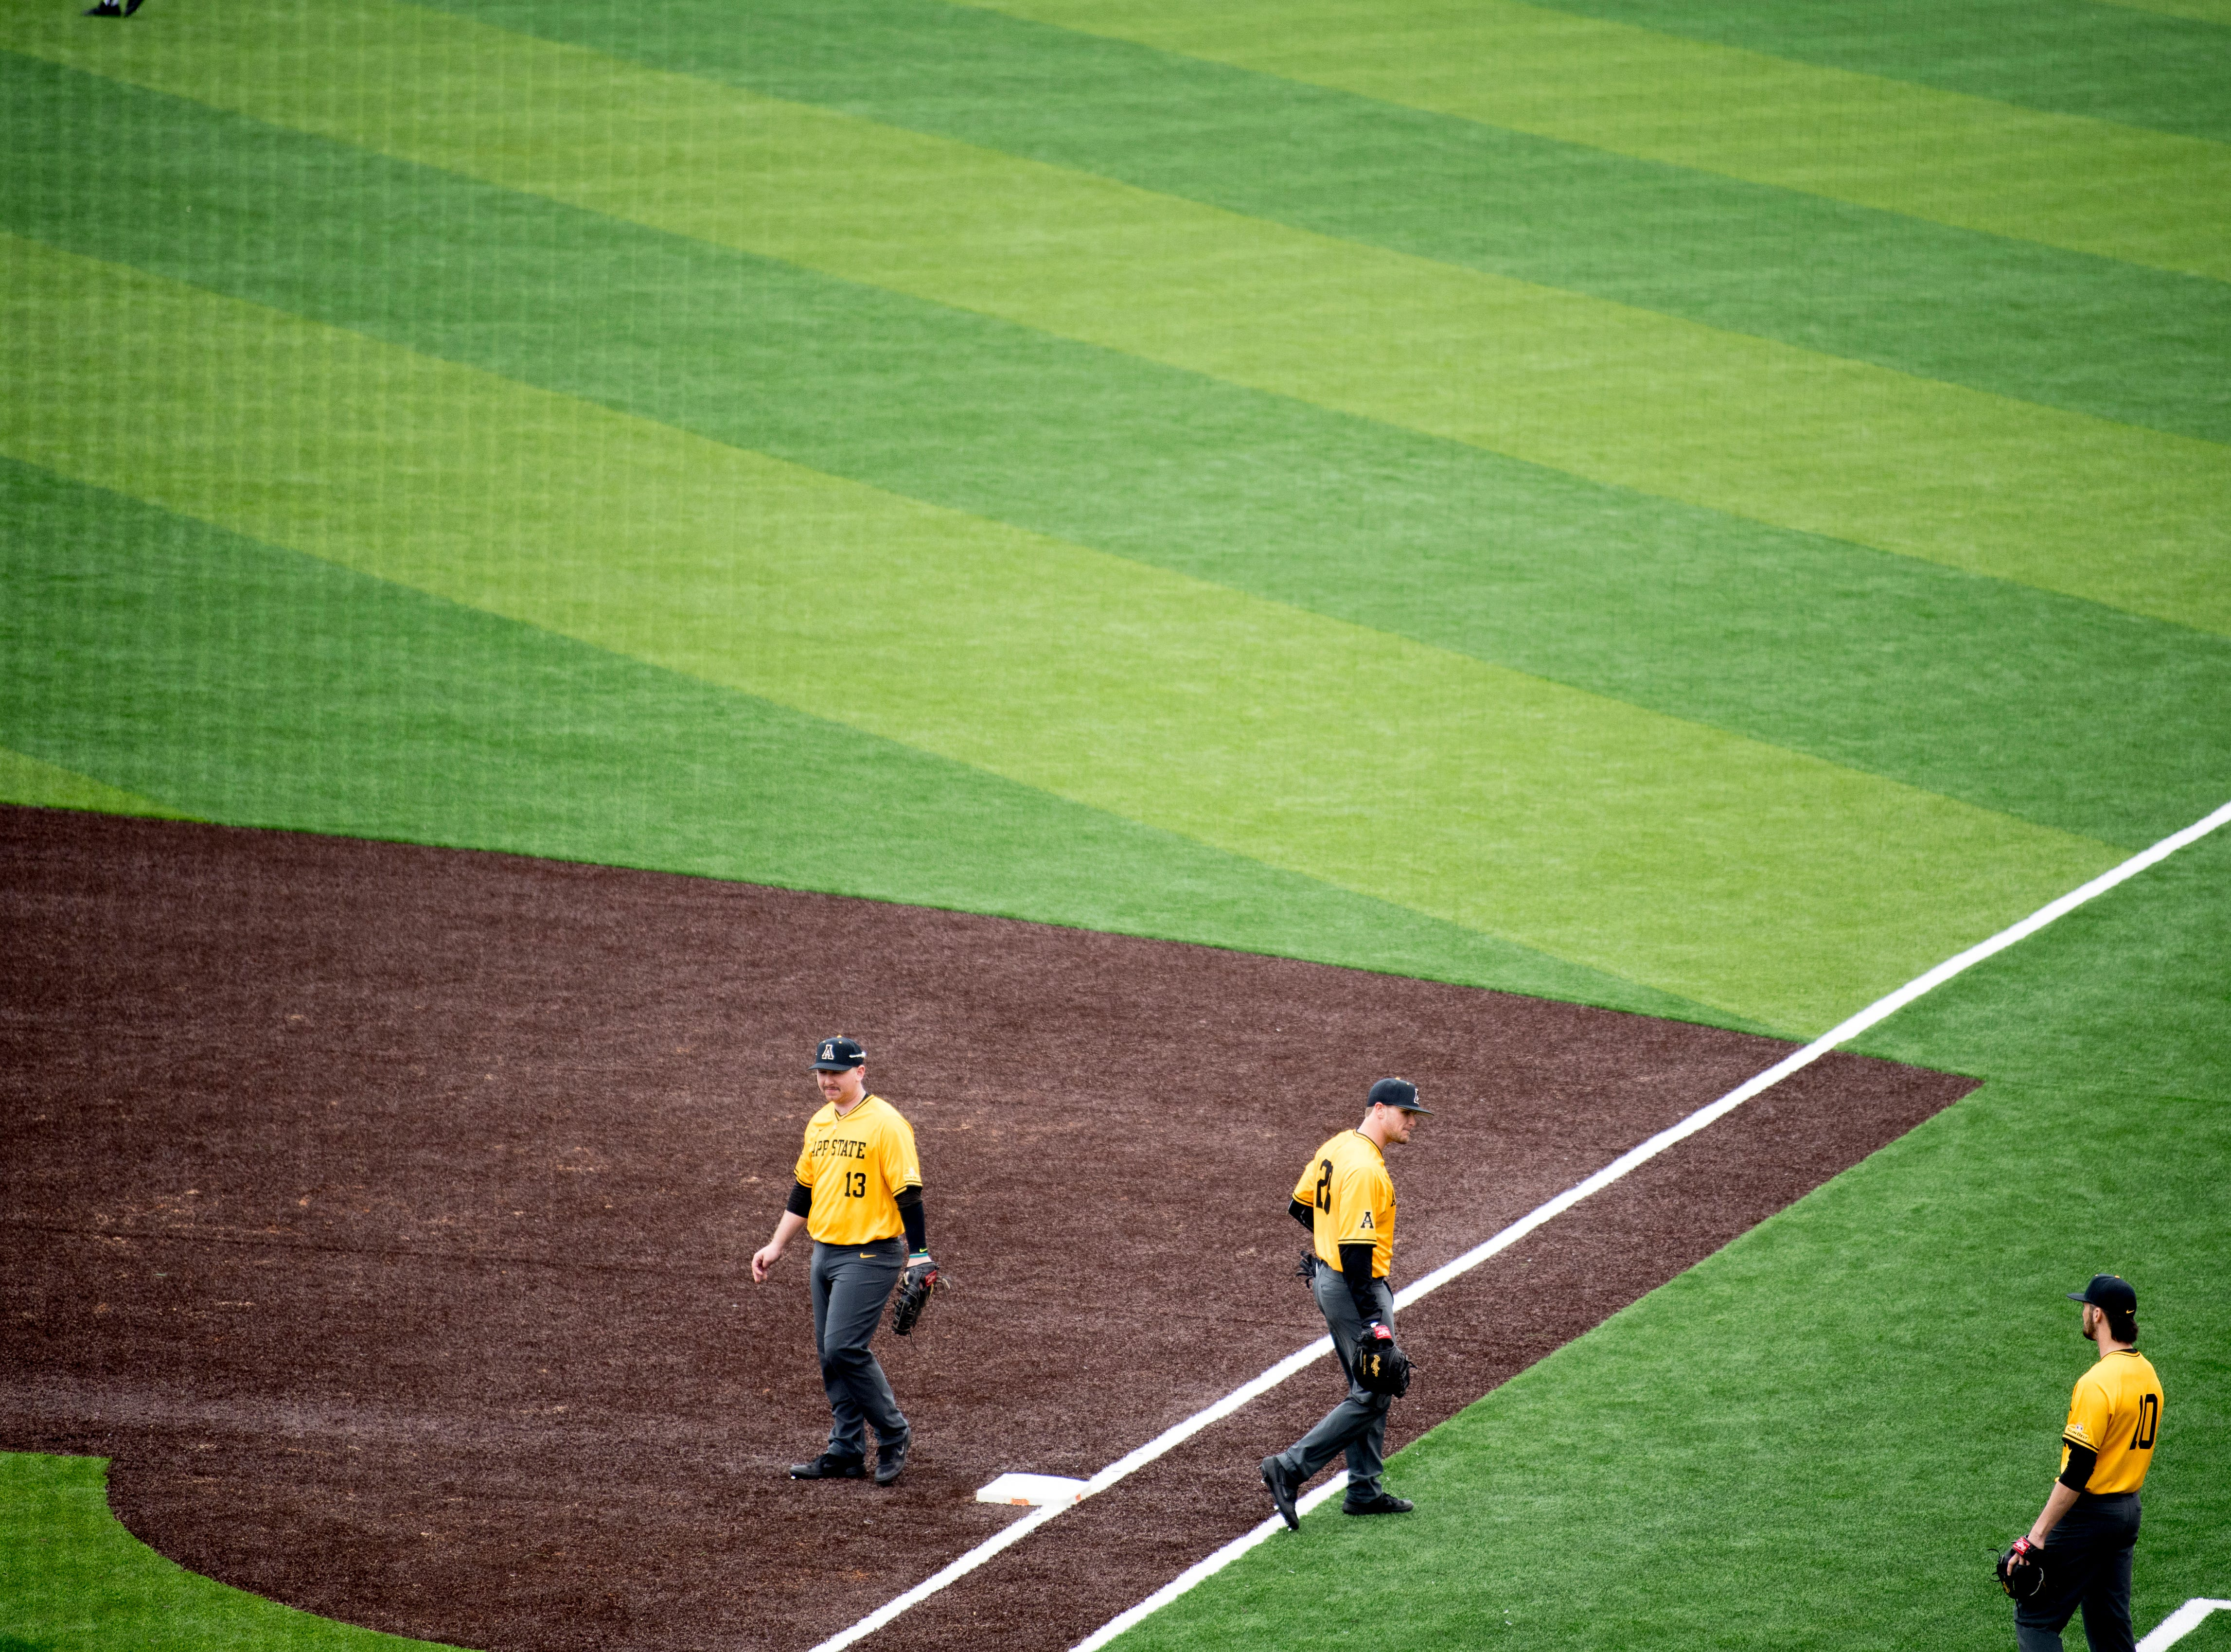 Appalachian State players warm up on the all-new turf field at Lindsey Nelson Stadium in Knoxville, Tennessee on Saturday, February 16, 2019. The pitchers mound is the only part of the field that remains dirt.